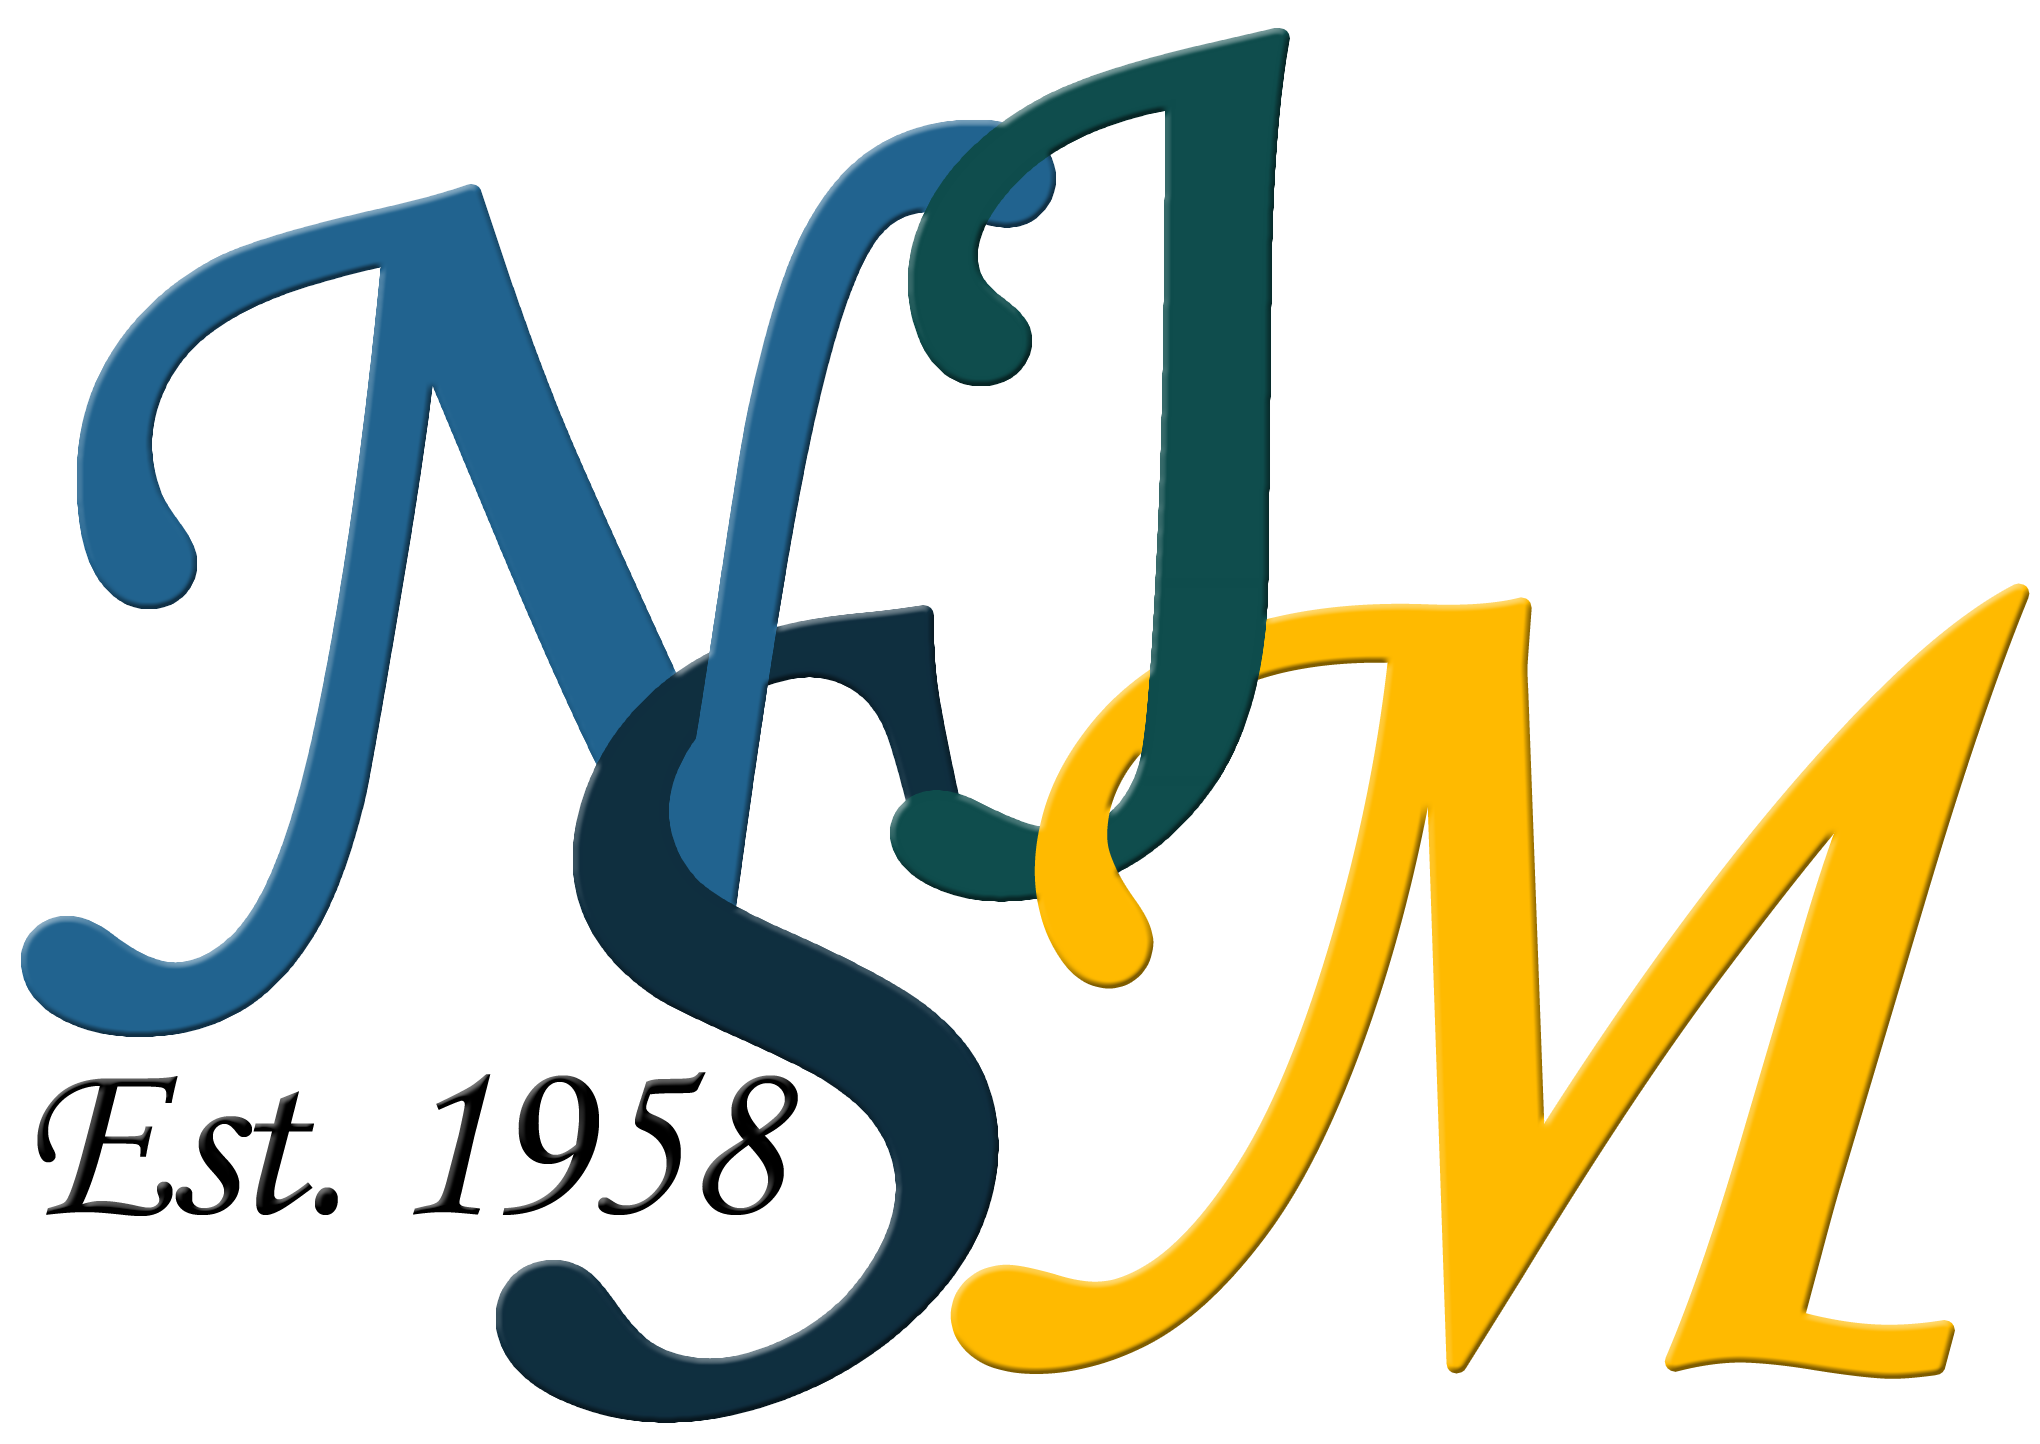 New Jersey School of Music Logo